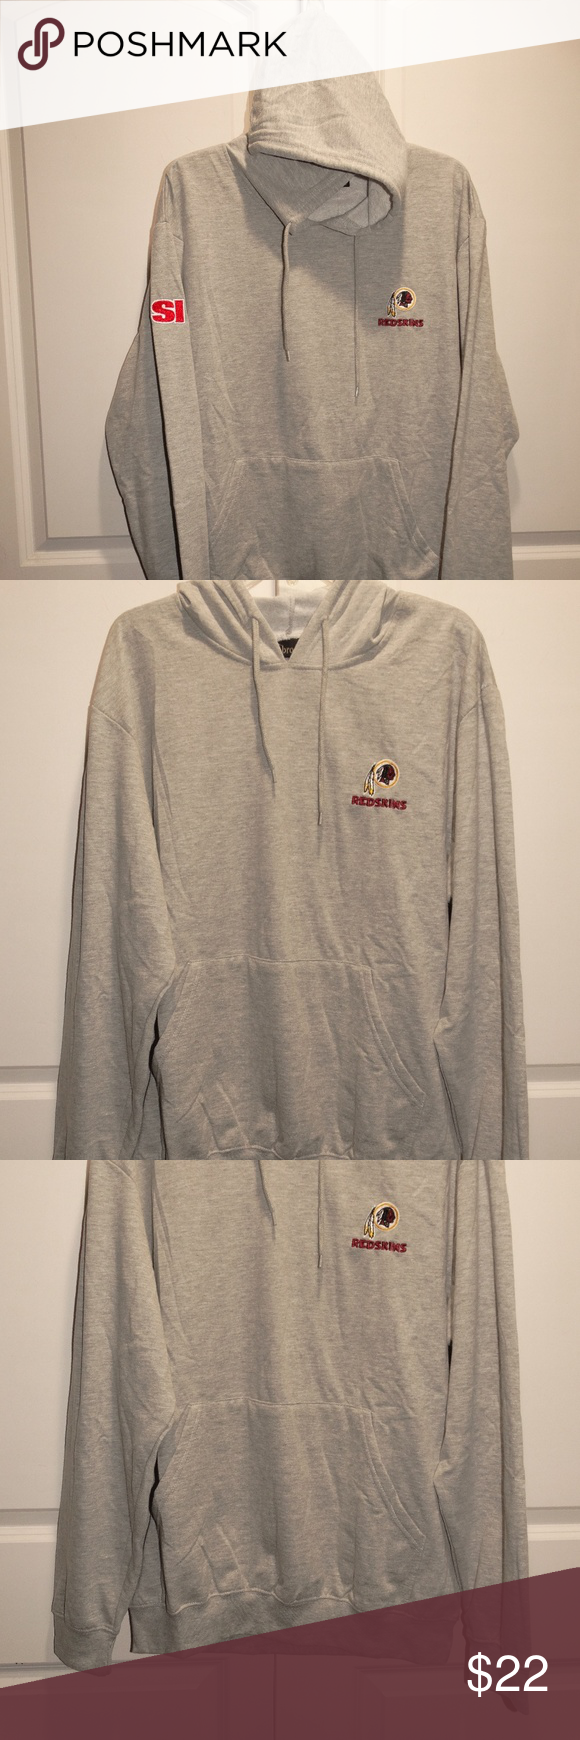 c70293130 WASHINGTON REDSKINS Sports Illustrated Hoodie XL Men s Size XL Item is New  with tags! Dallas